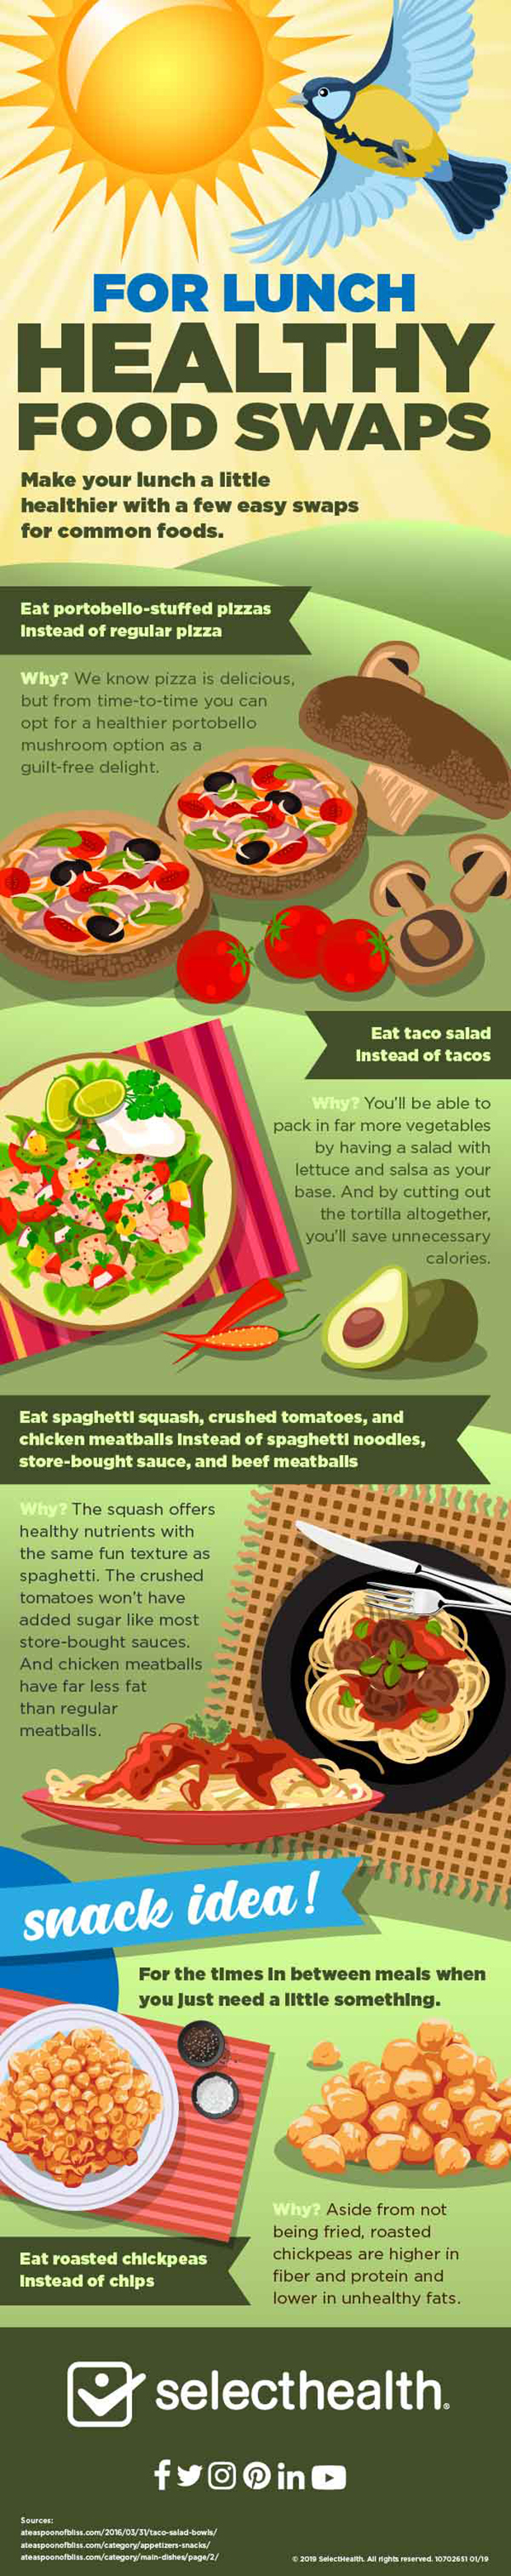 Infographic showing healthy food swaps for lunch